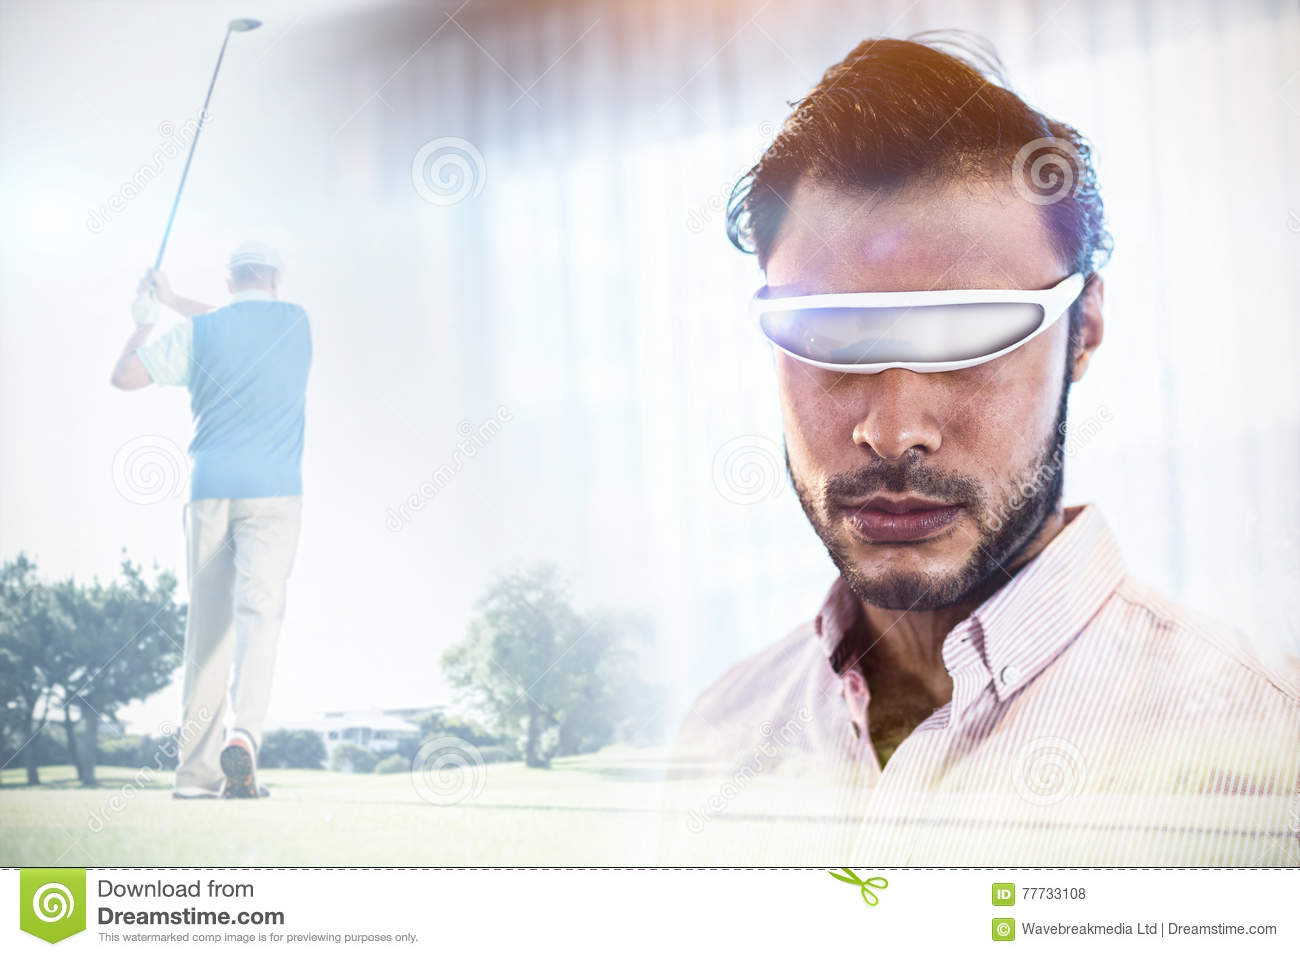 Composite image of golf player taking a shot